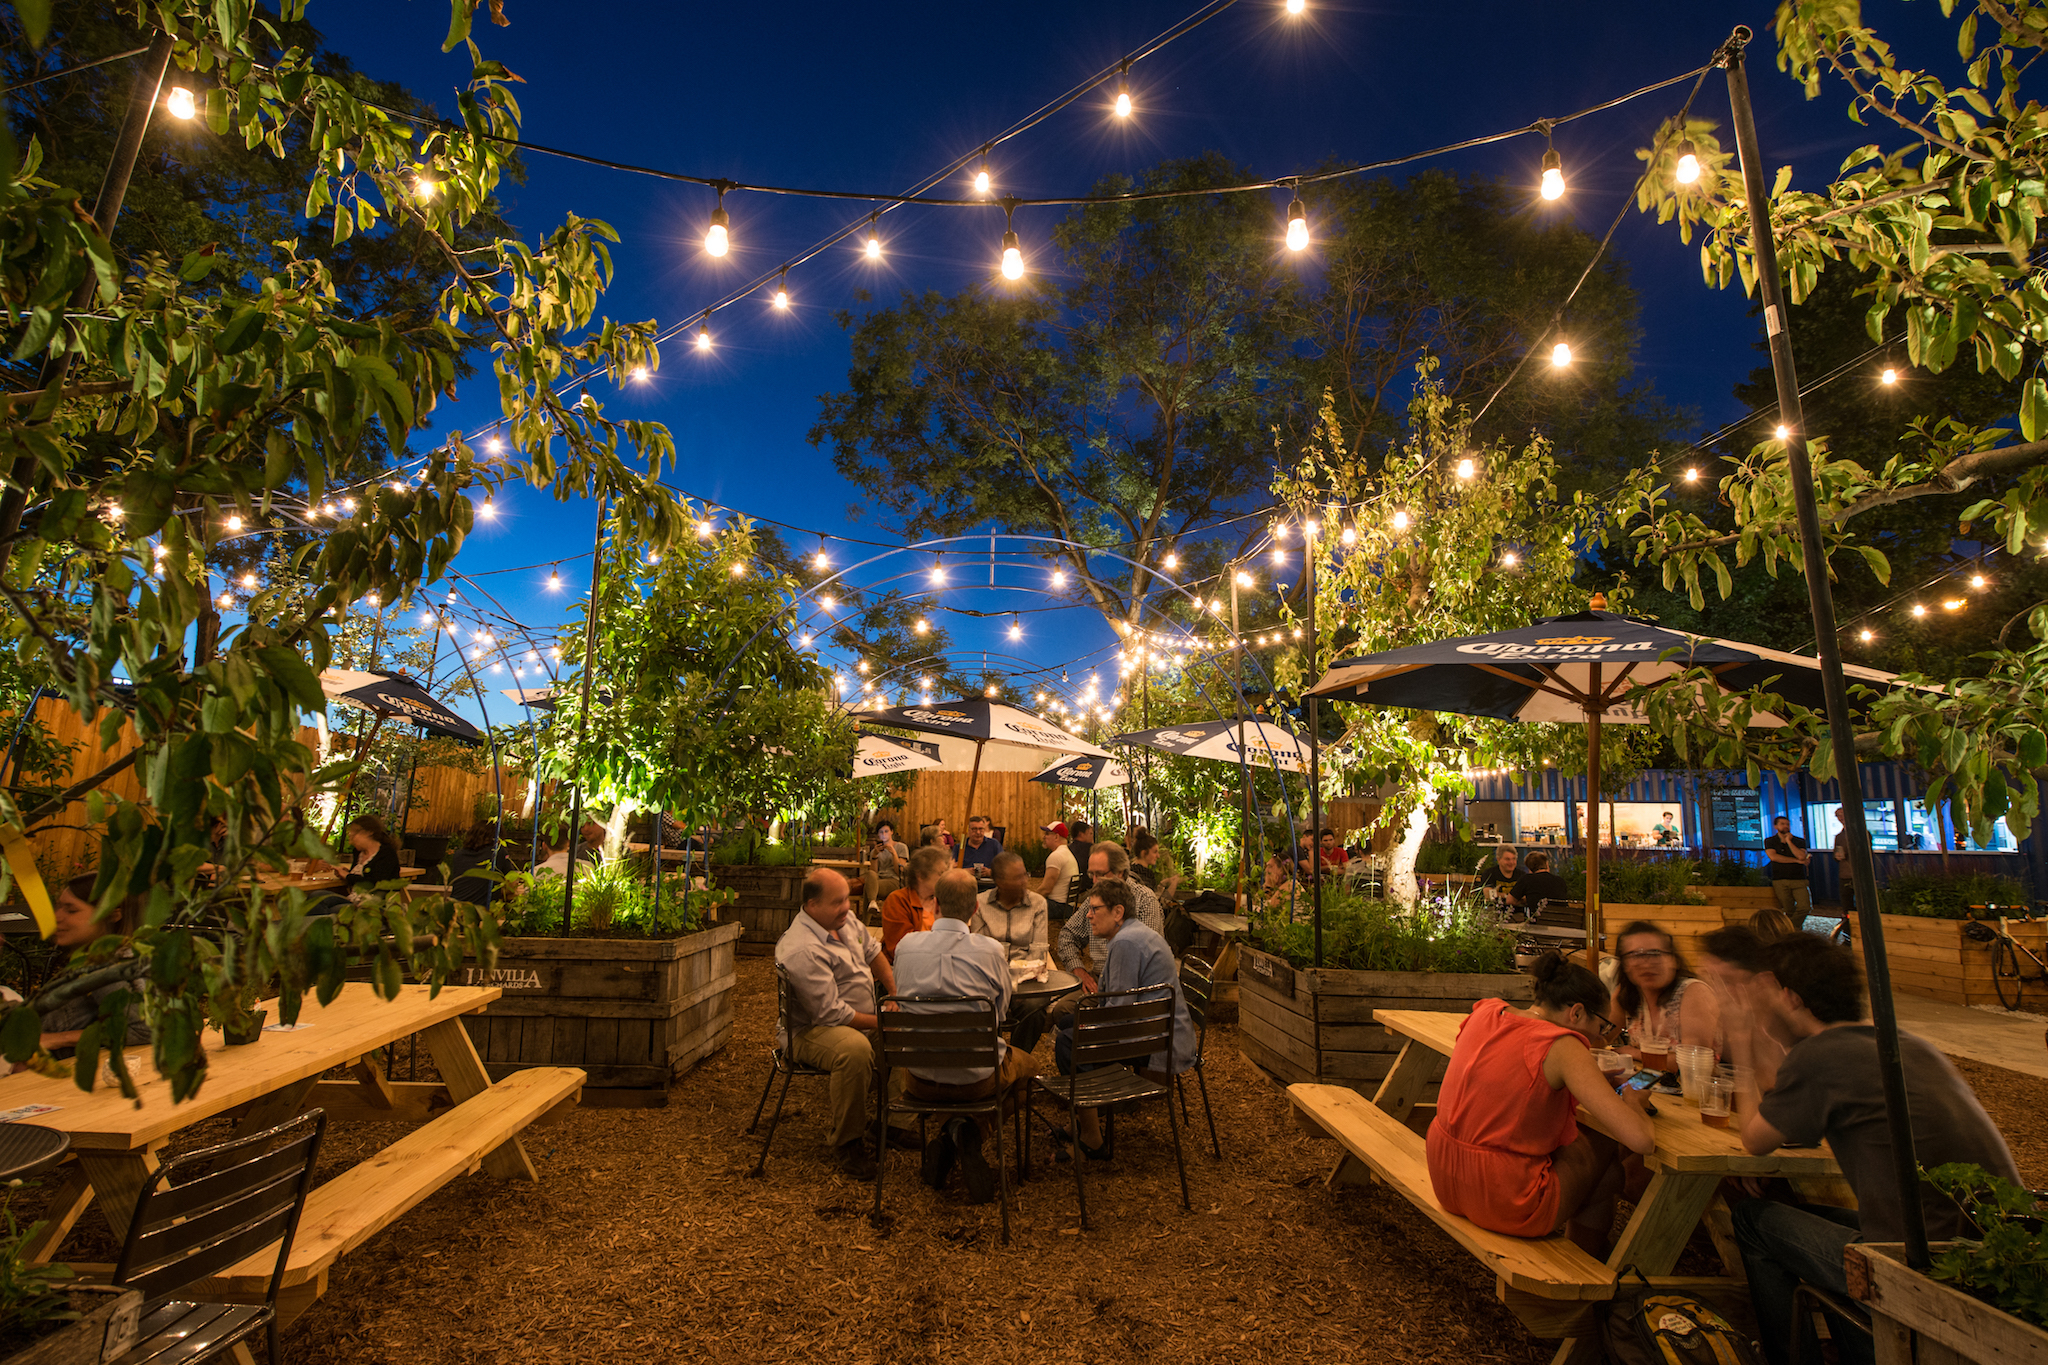 The best beer gardens in Philadelphia for outdoor drinking